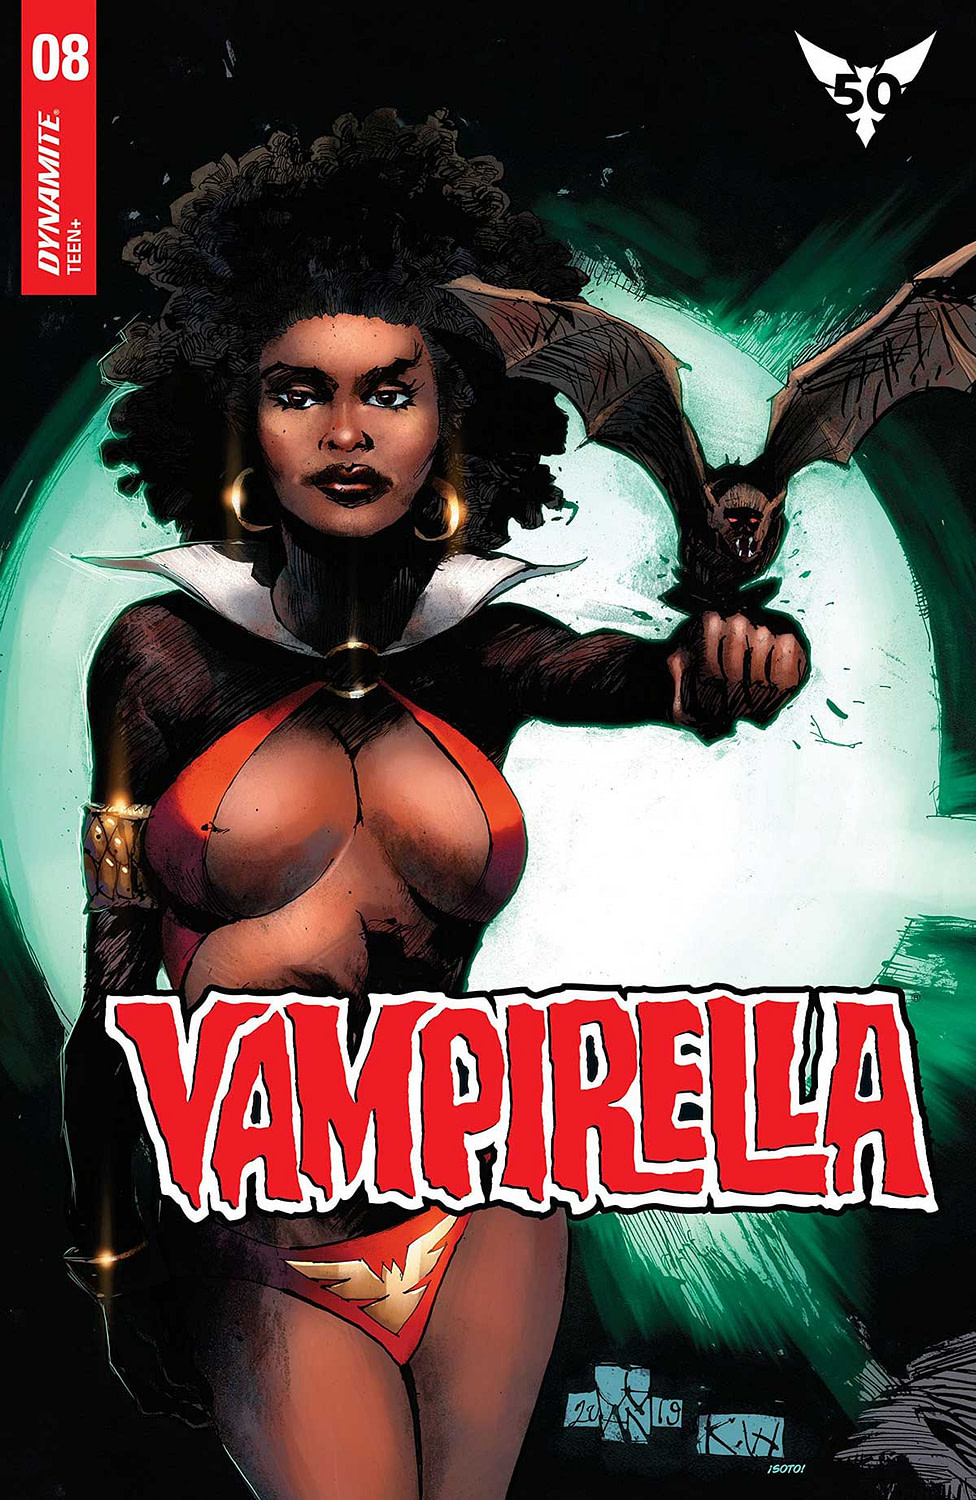 """REVIEW: Vampirella #8 -- """"Pretty Or Not, This Doesn't Connect The Dots"""""""